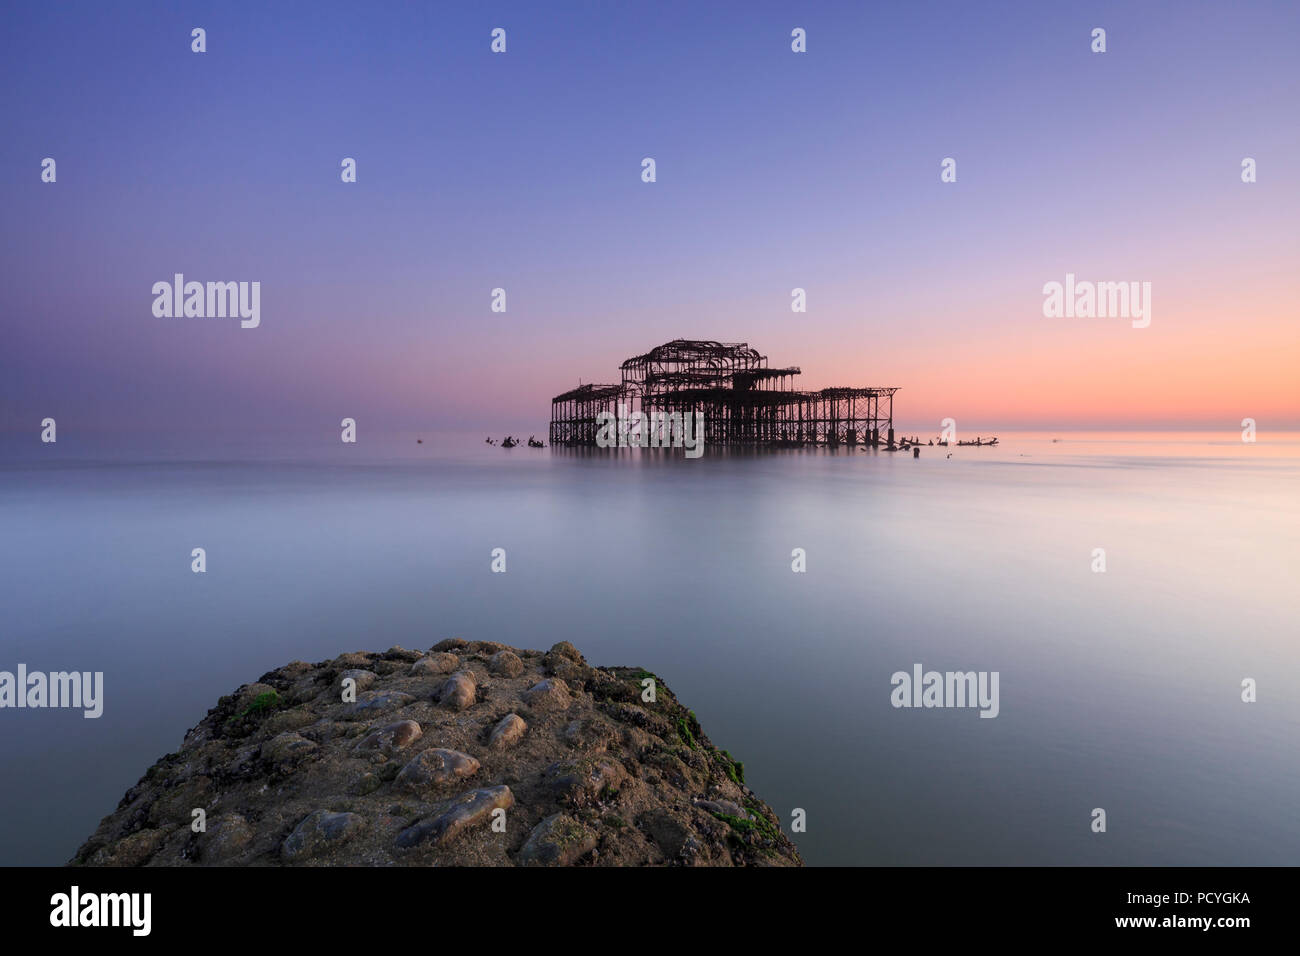 The ruins of the West Pier in Brighton at sunset and a low spring tide - Stock Image